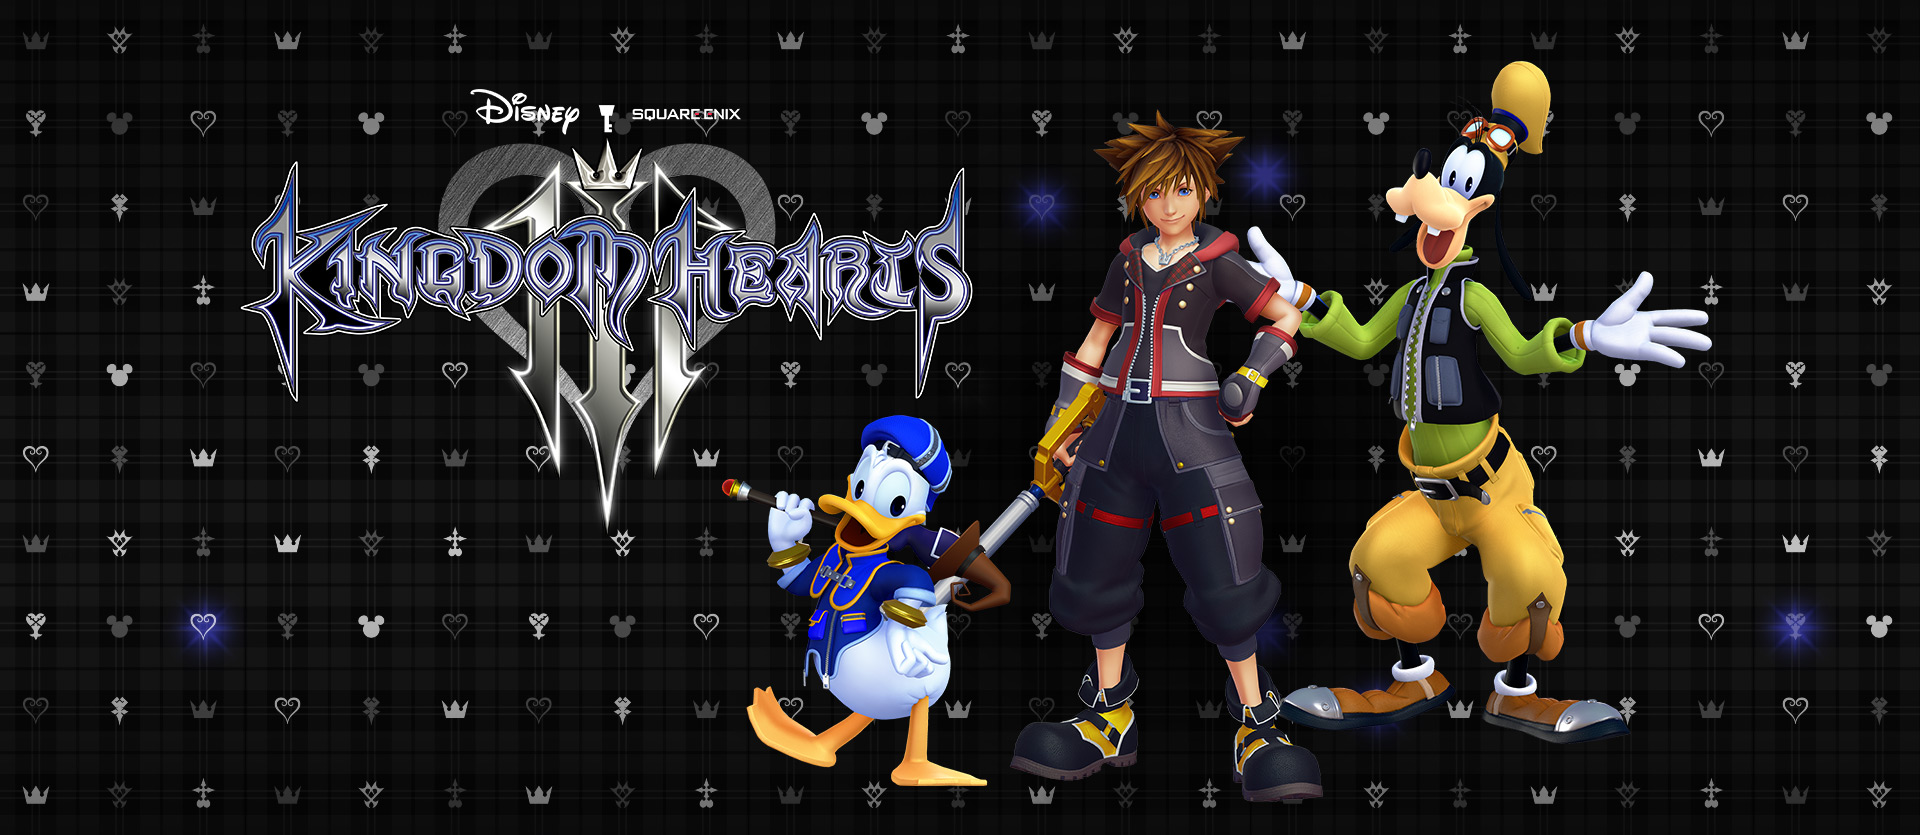 Kingdom Hearts III, Front view of Sora, Donald, and Goofy in front of a background full of hearts and mickey mouse logos